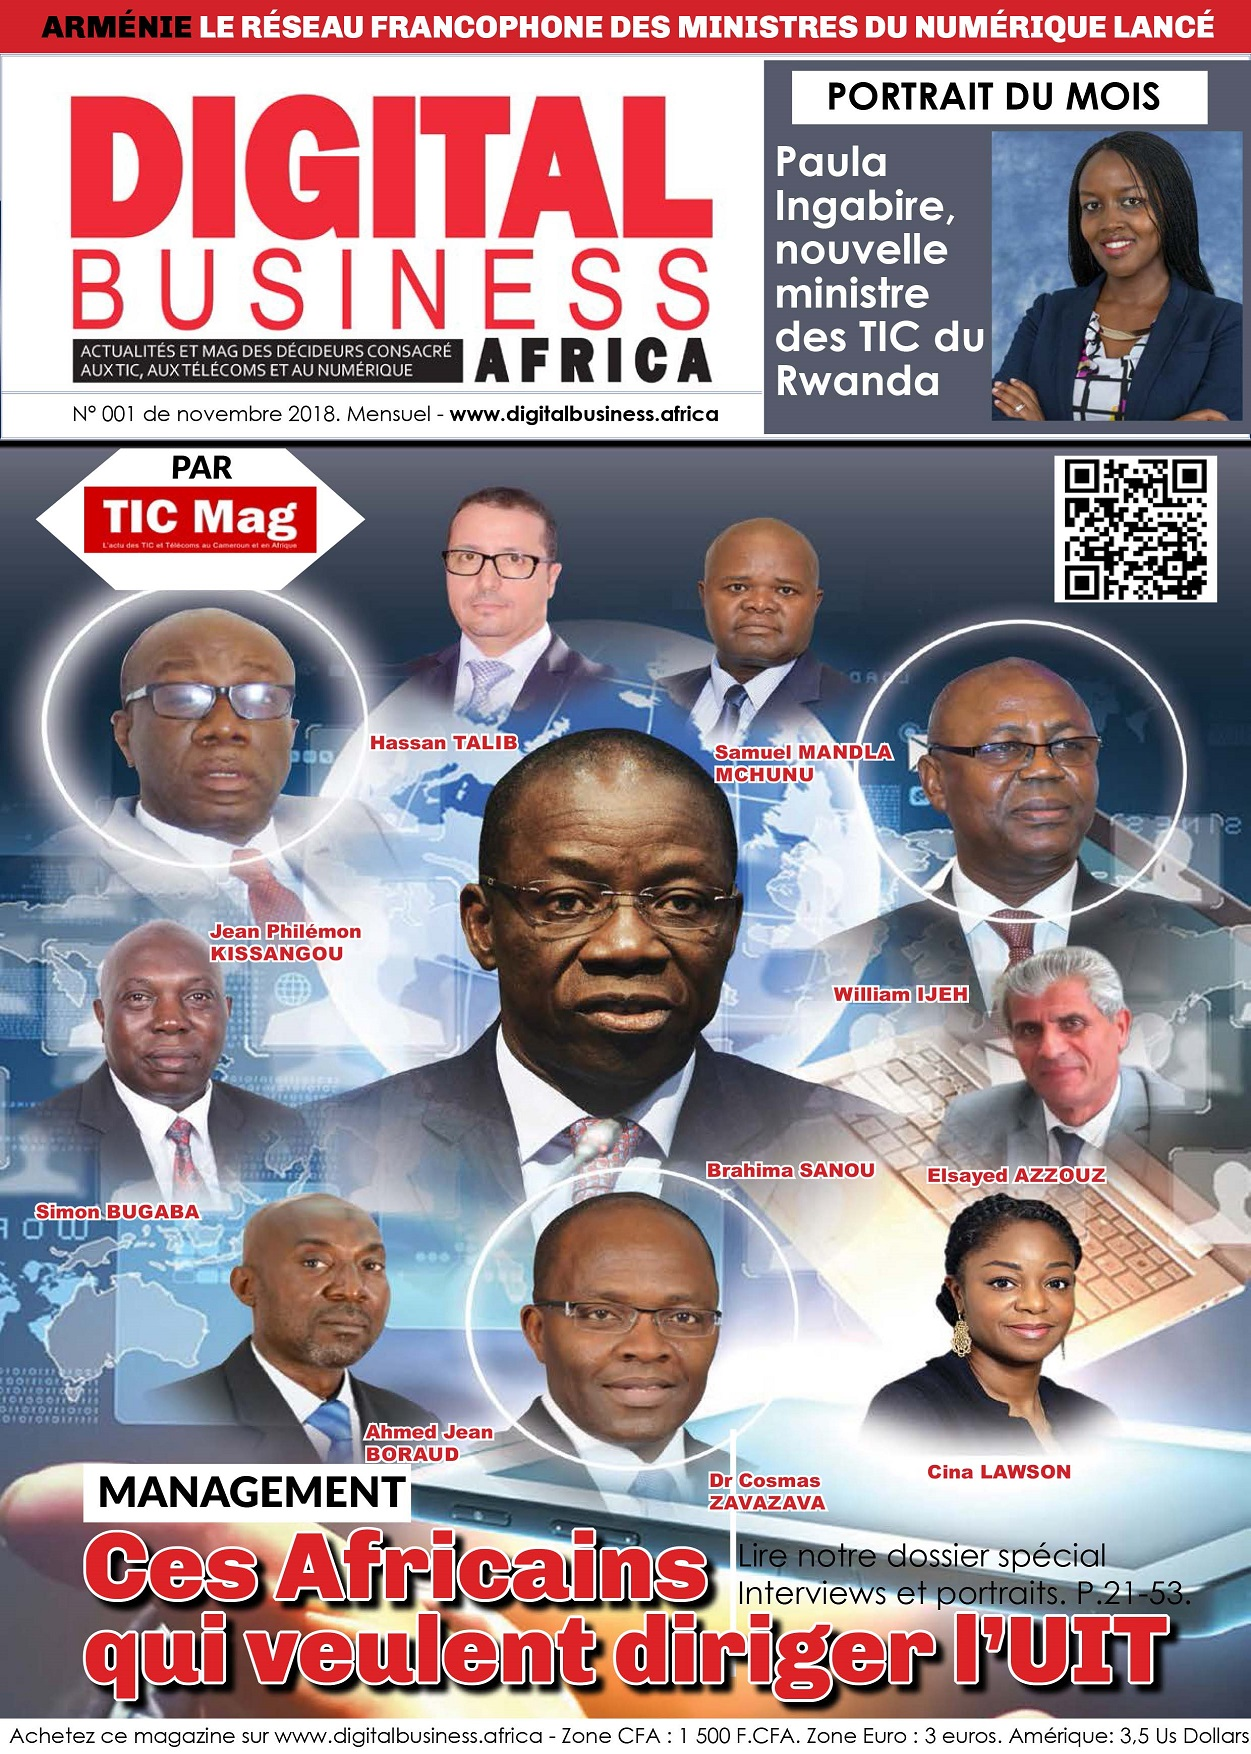 Digital Business Africa